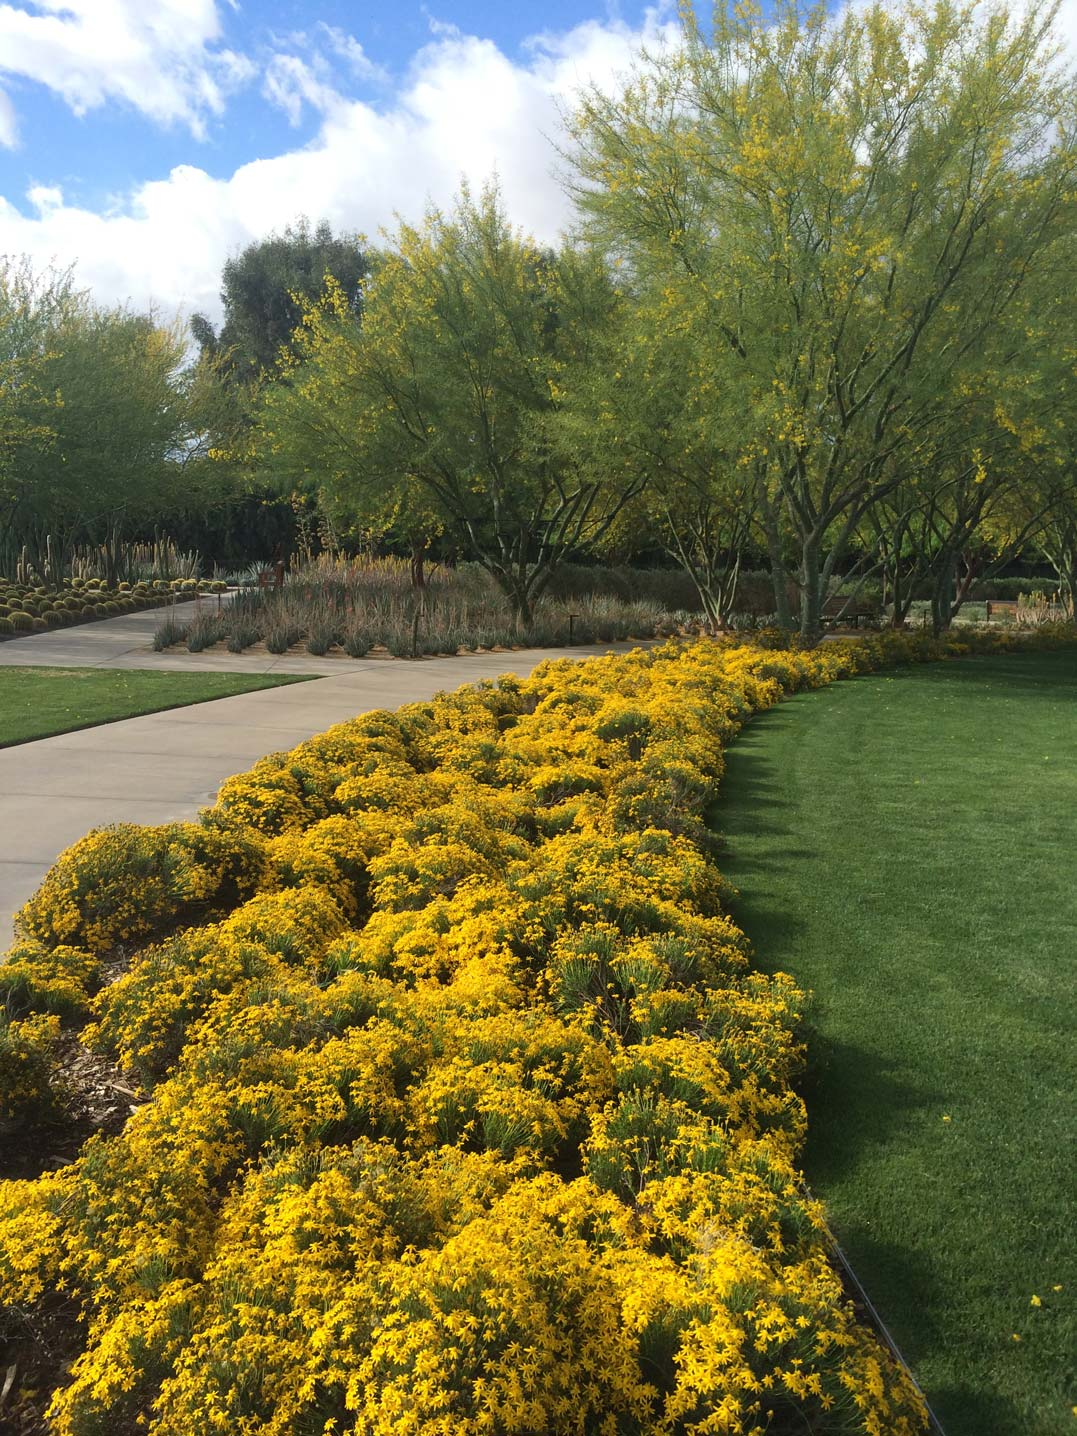 The left side of the Great Lawn with bright yellow Damianita blooms bordering the lawn sits in the foreground. In the background, the lawn is bordered by blooming Palo Verde trees.